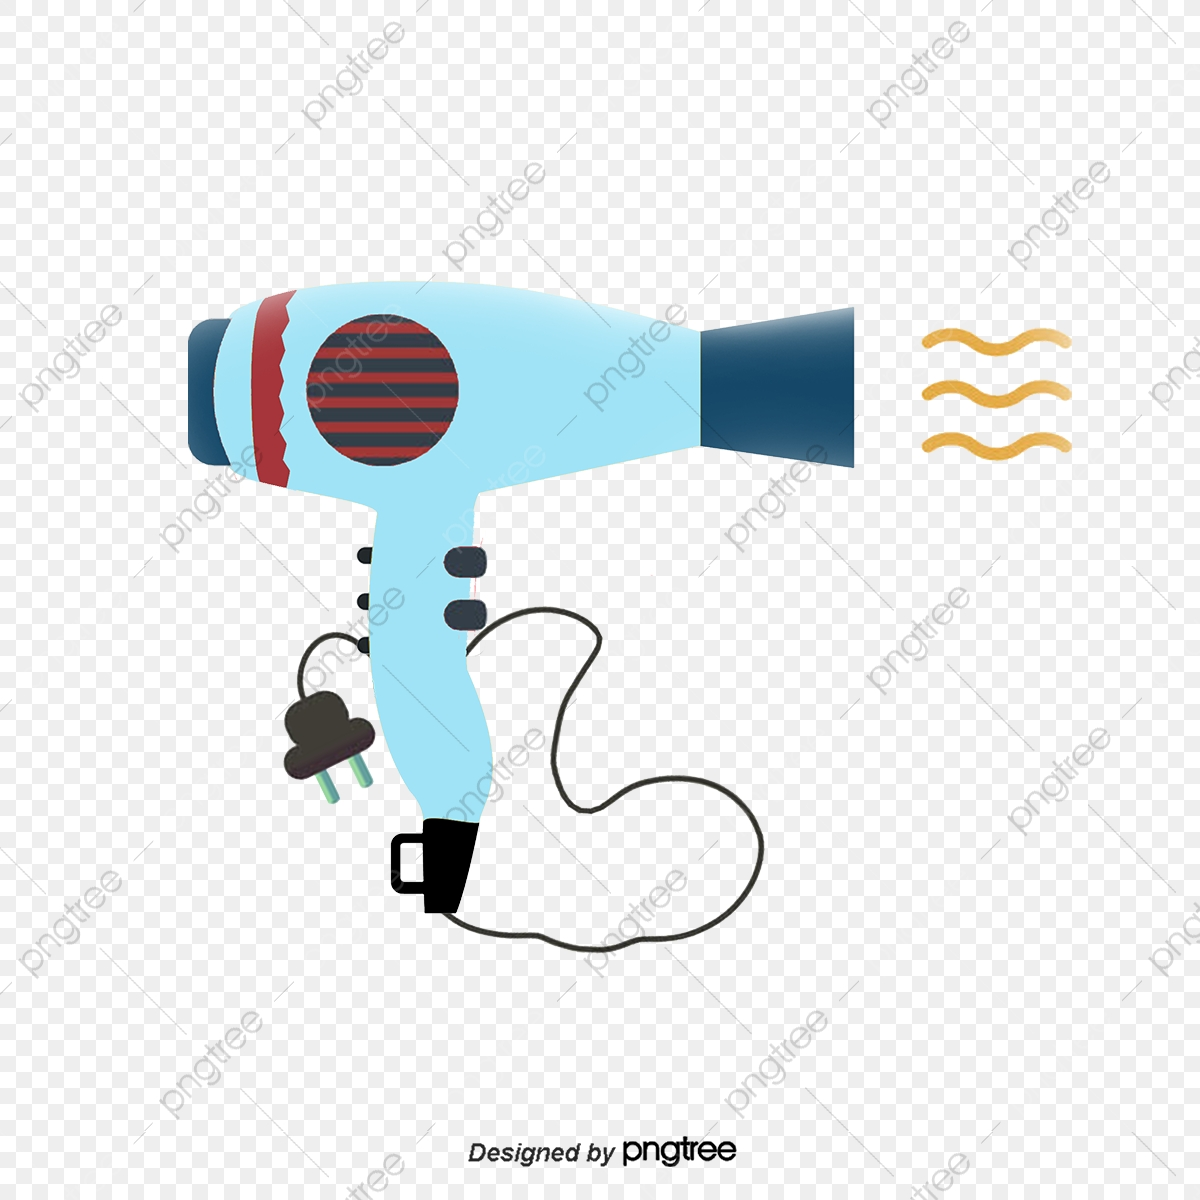 hight resolution of commercial use resource upgrade to premium plan and get license authorization upgradenow cartoon hair dryer